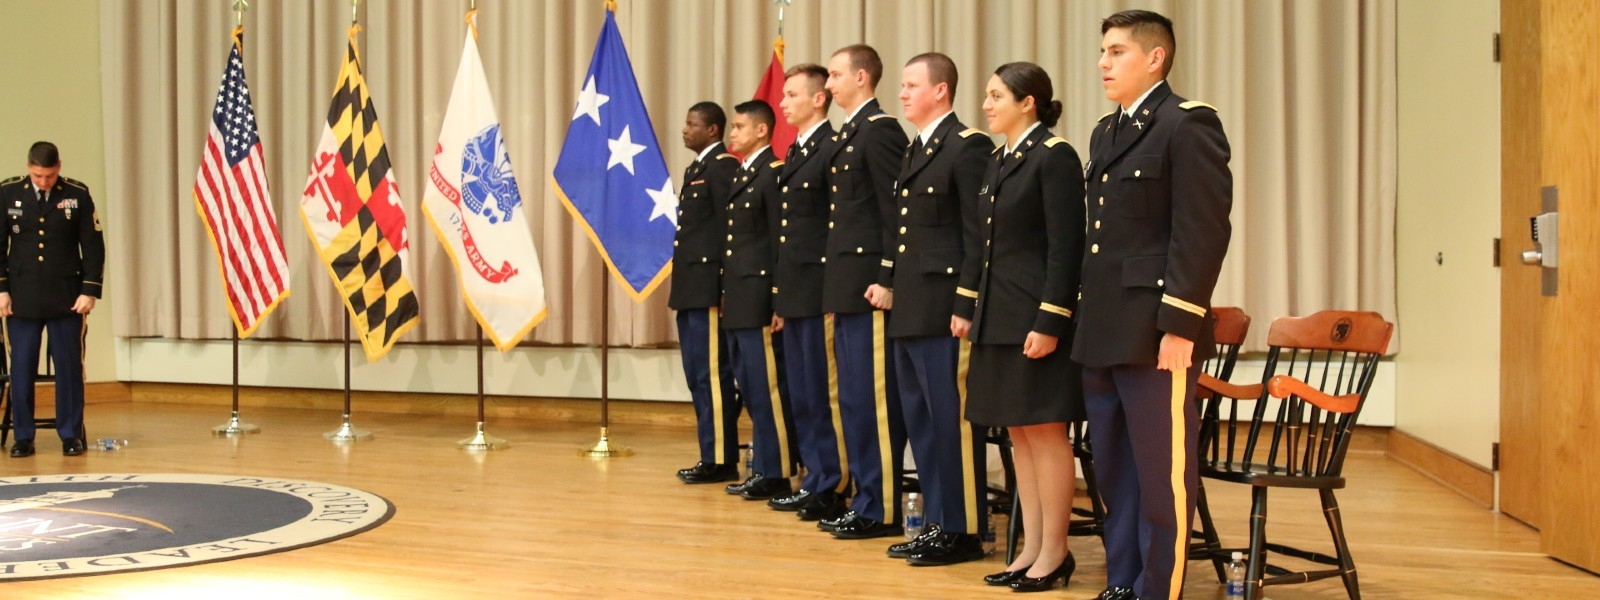 Military Science / ROTC cadet commissioning at Mount St. Mary's University